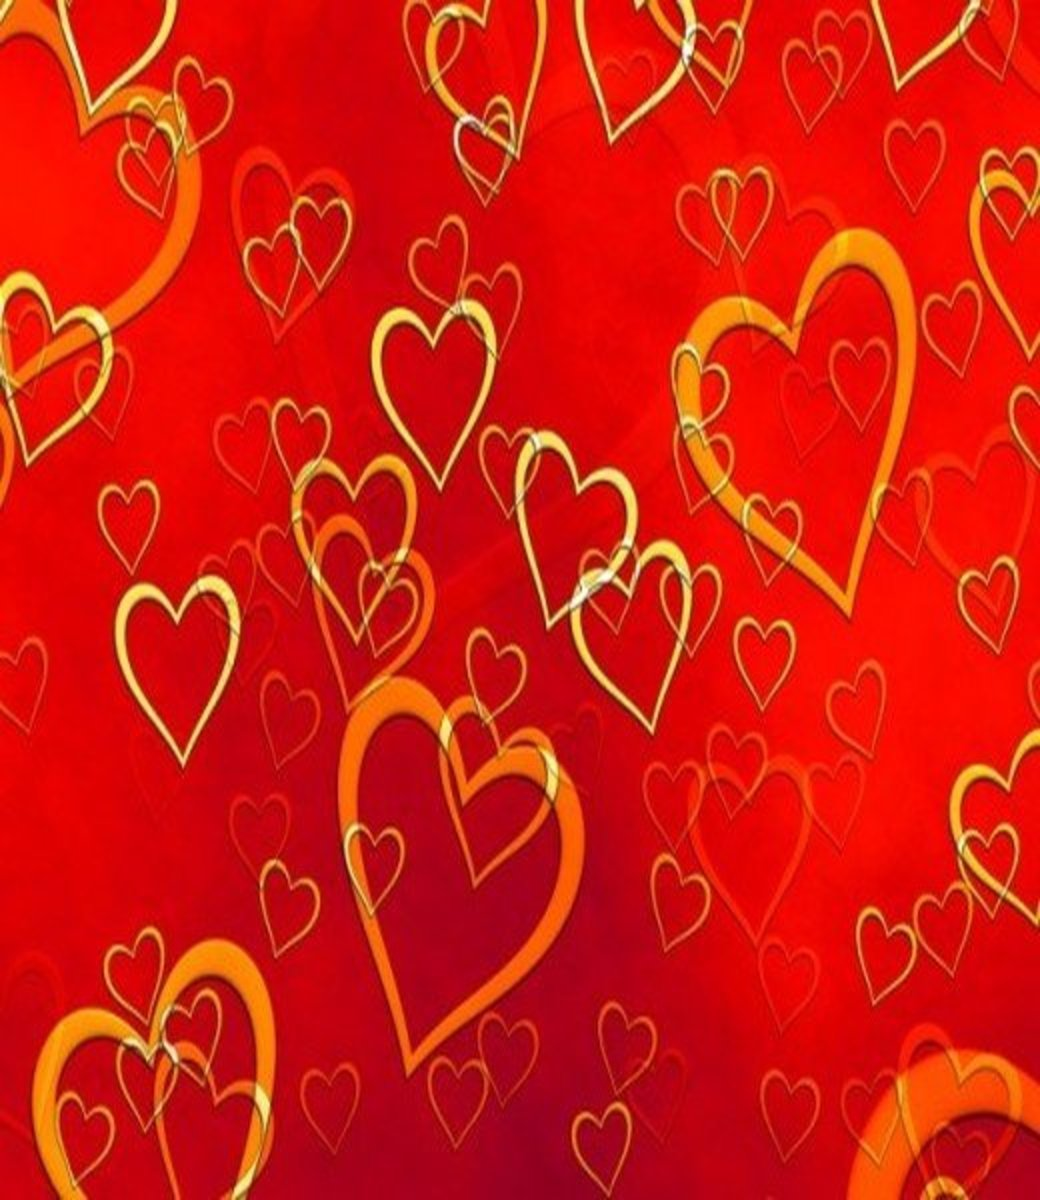 Hearts Pictures on Red Background